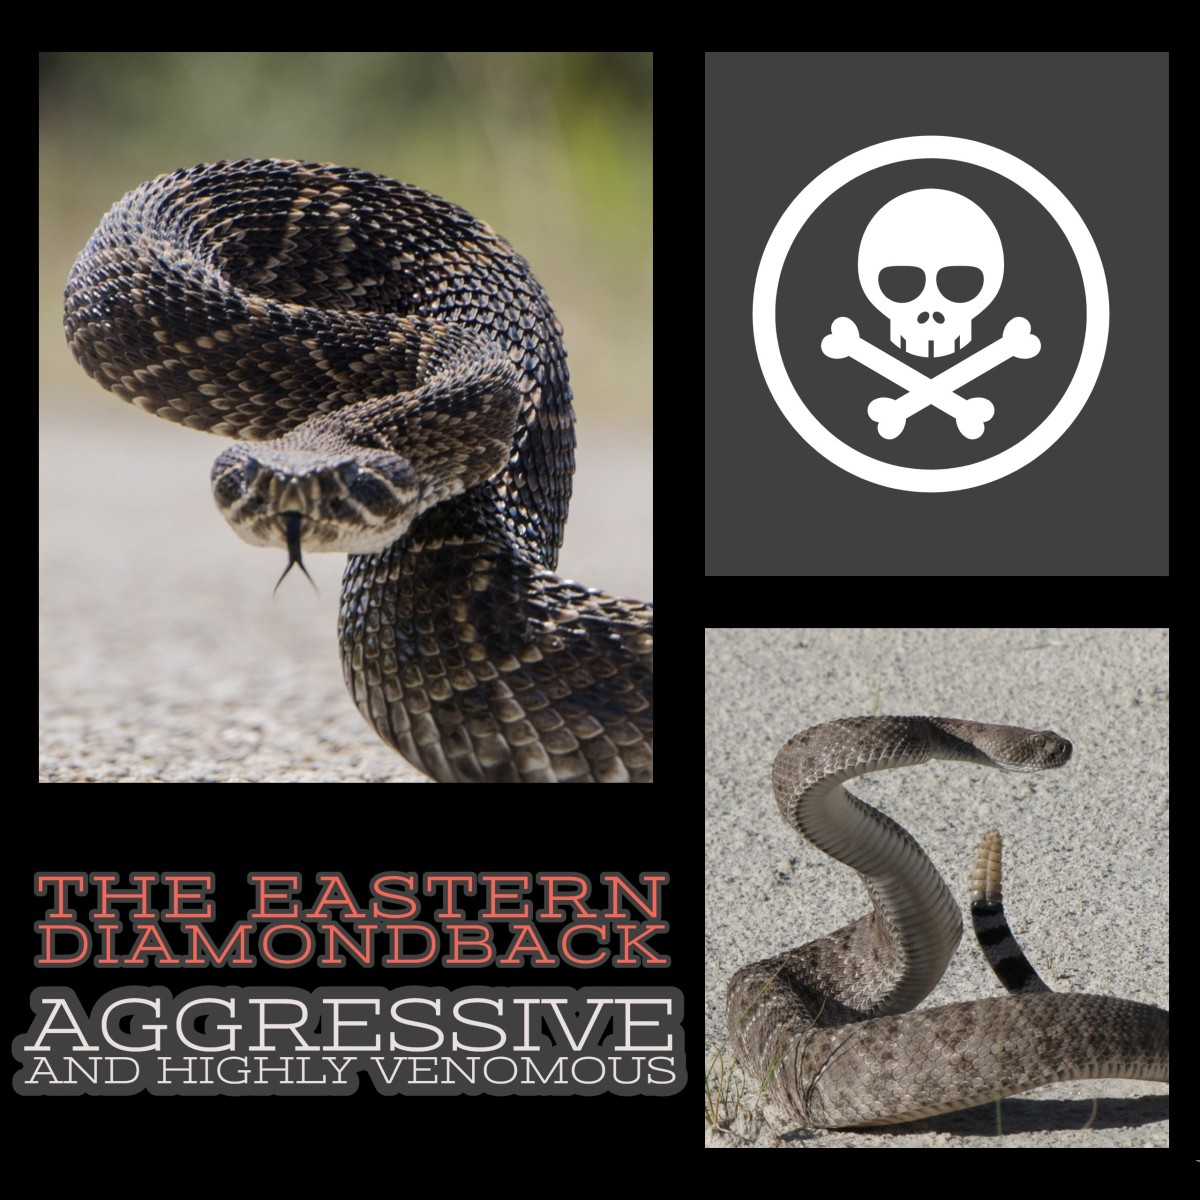 The Eastern Diamondback Rattlesnake: Aggressive and Highly Venomous.